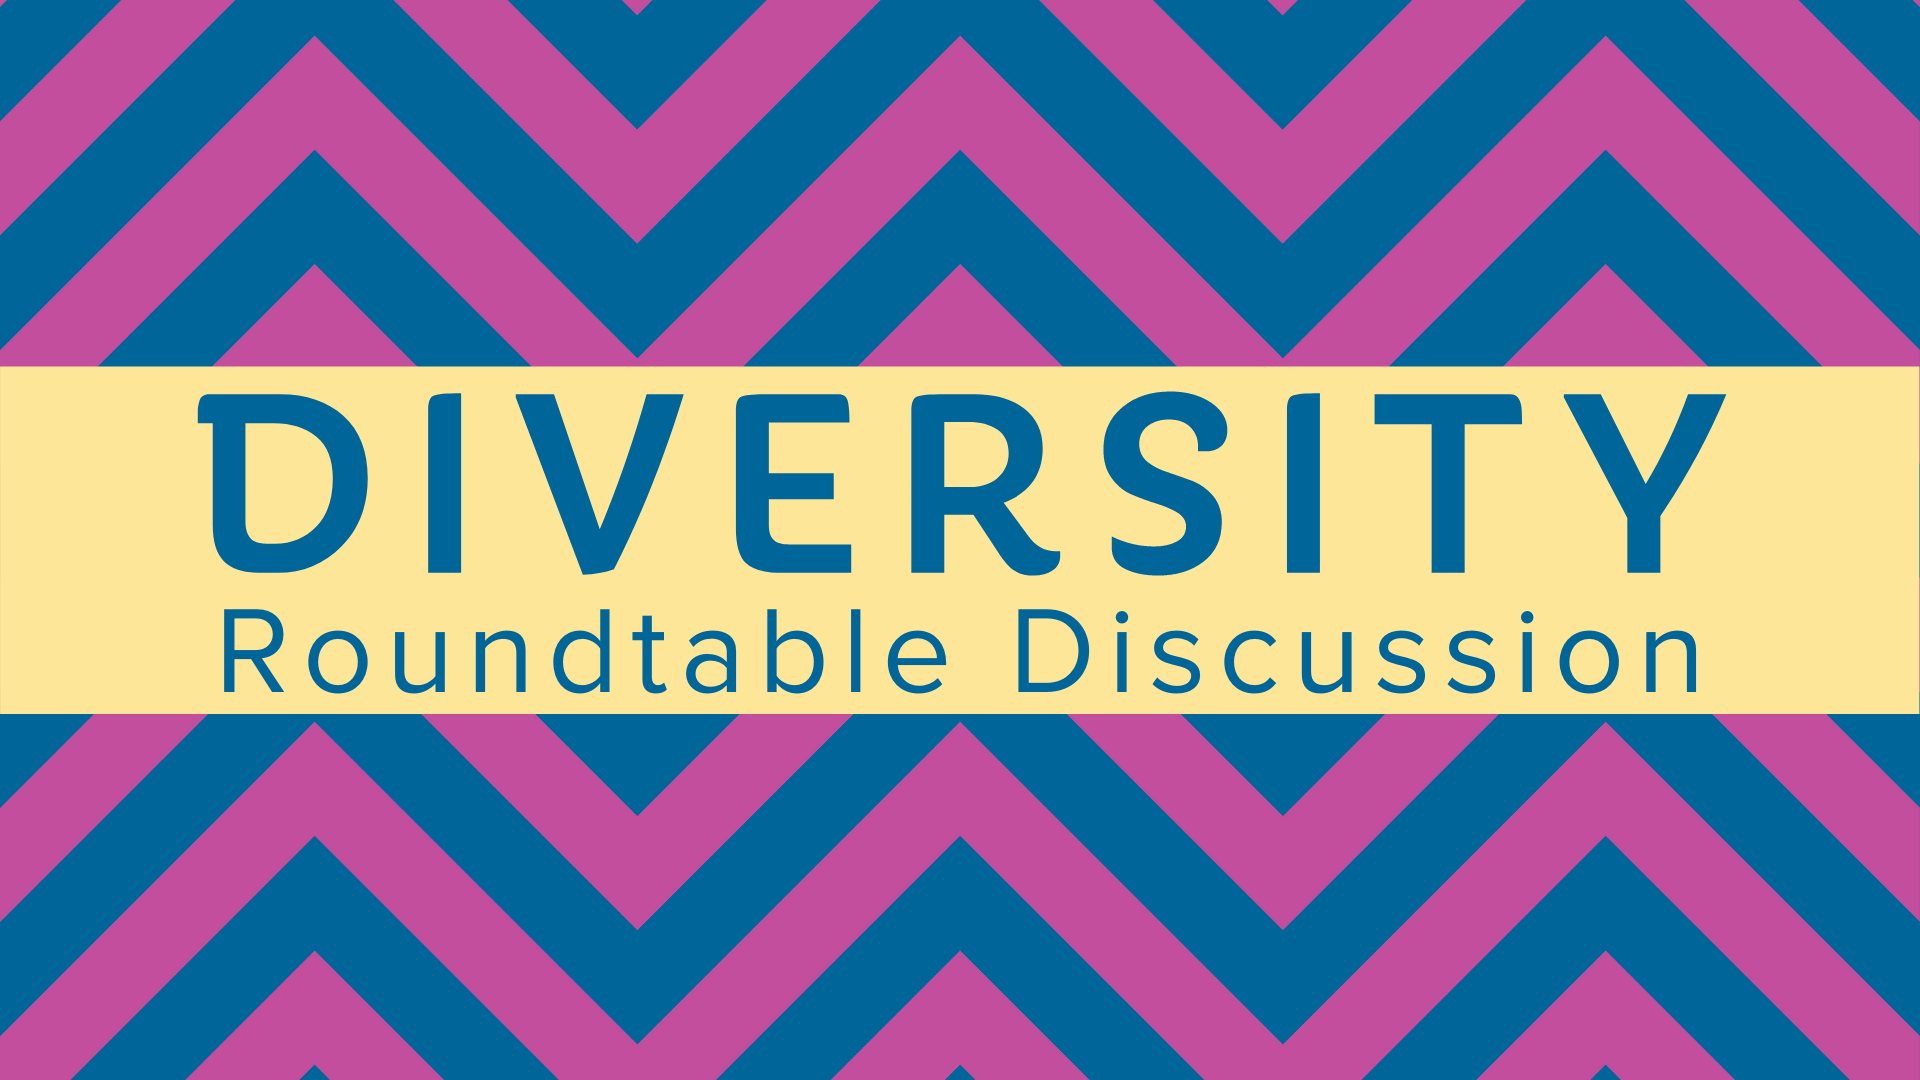 Diversity Roundtable Discussion